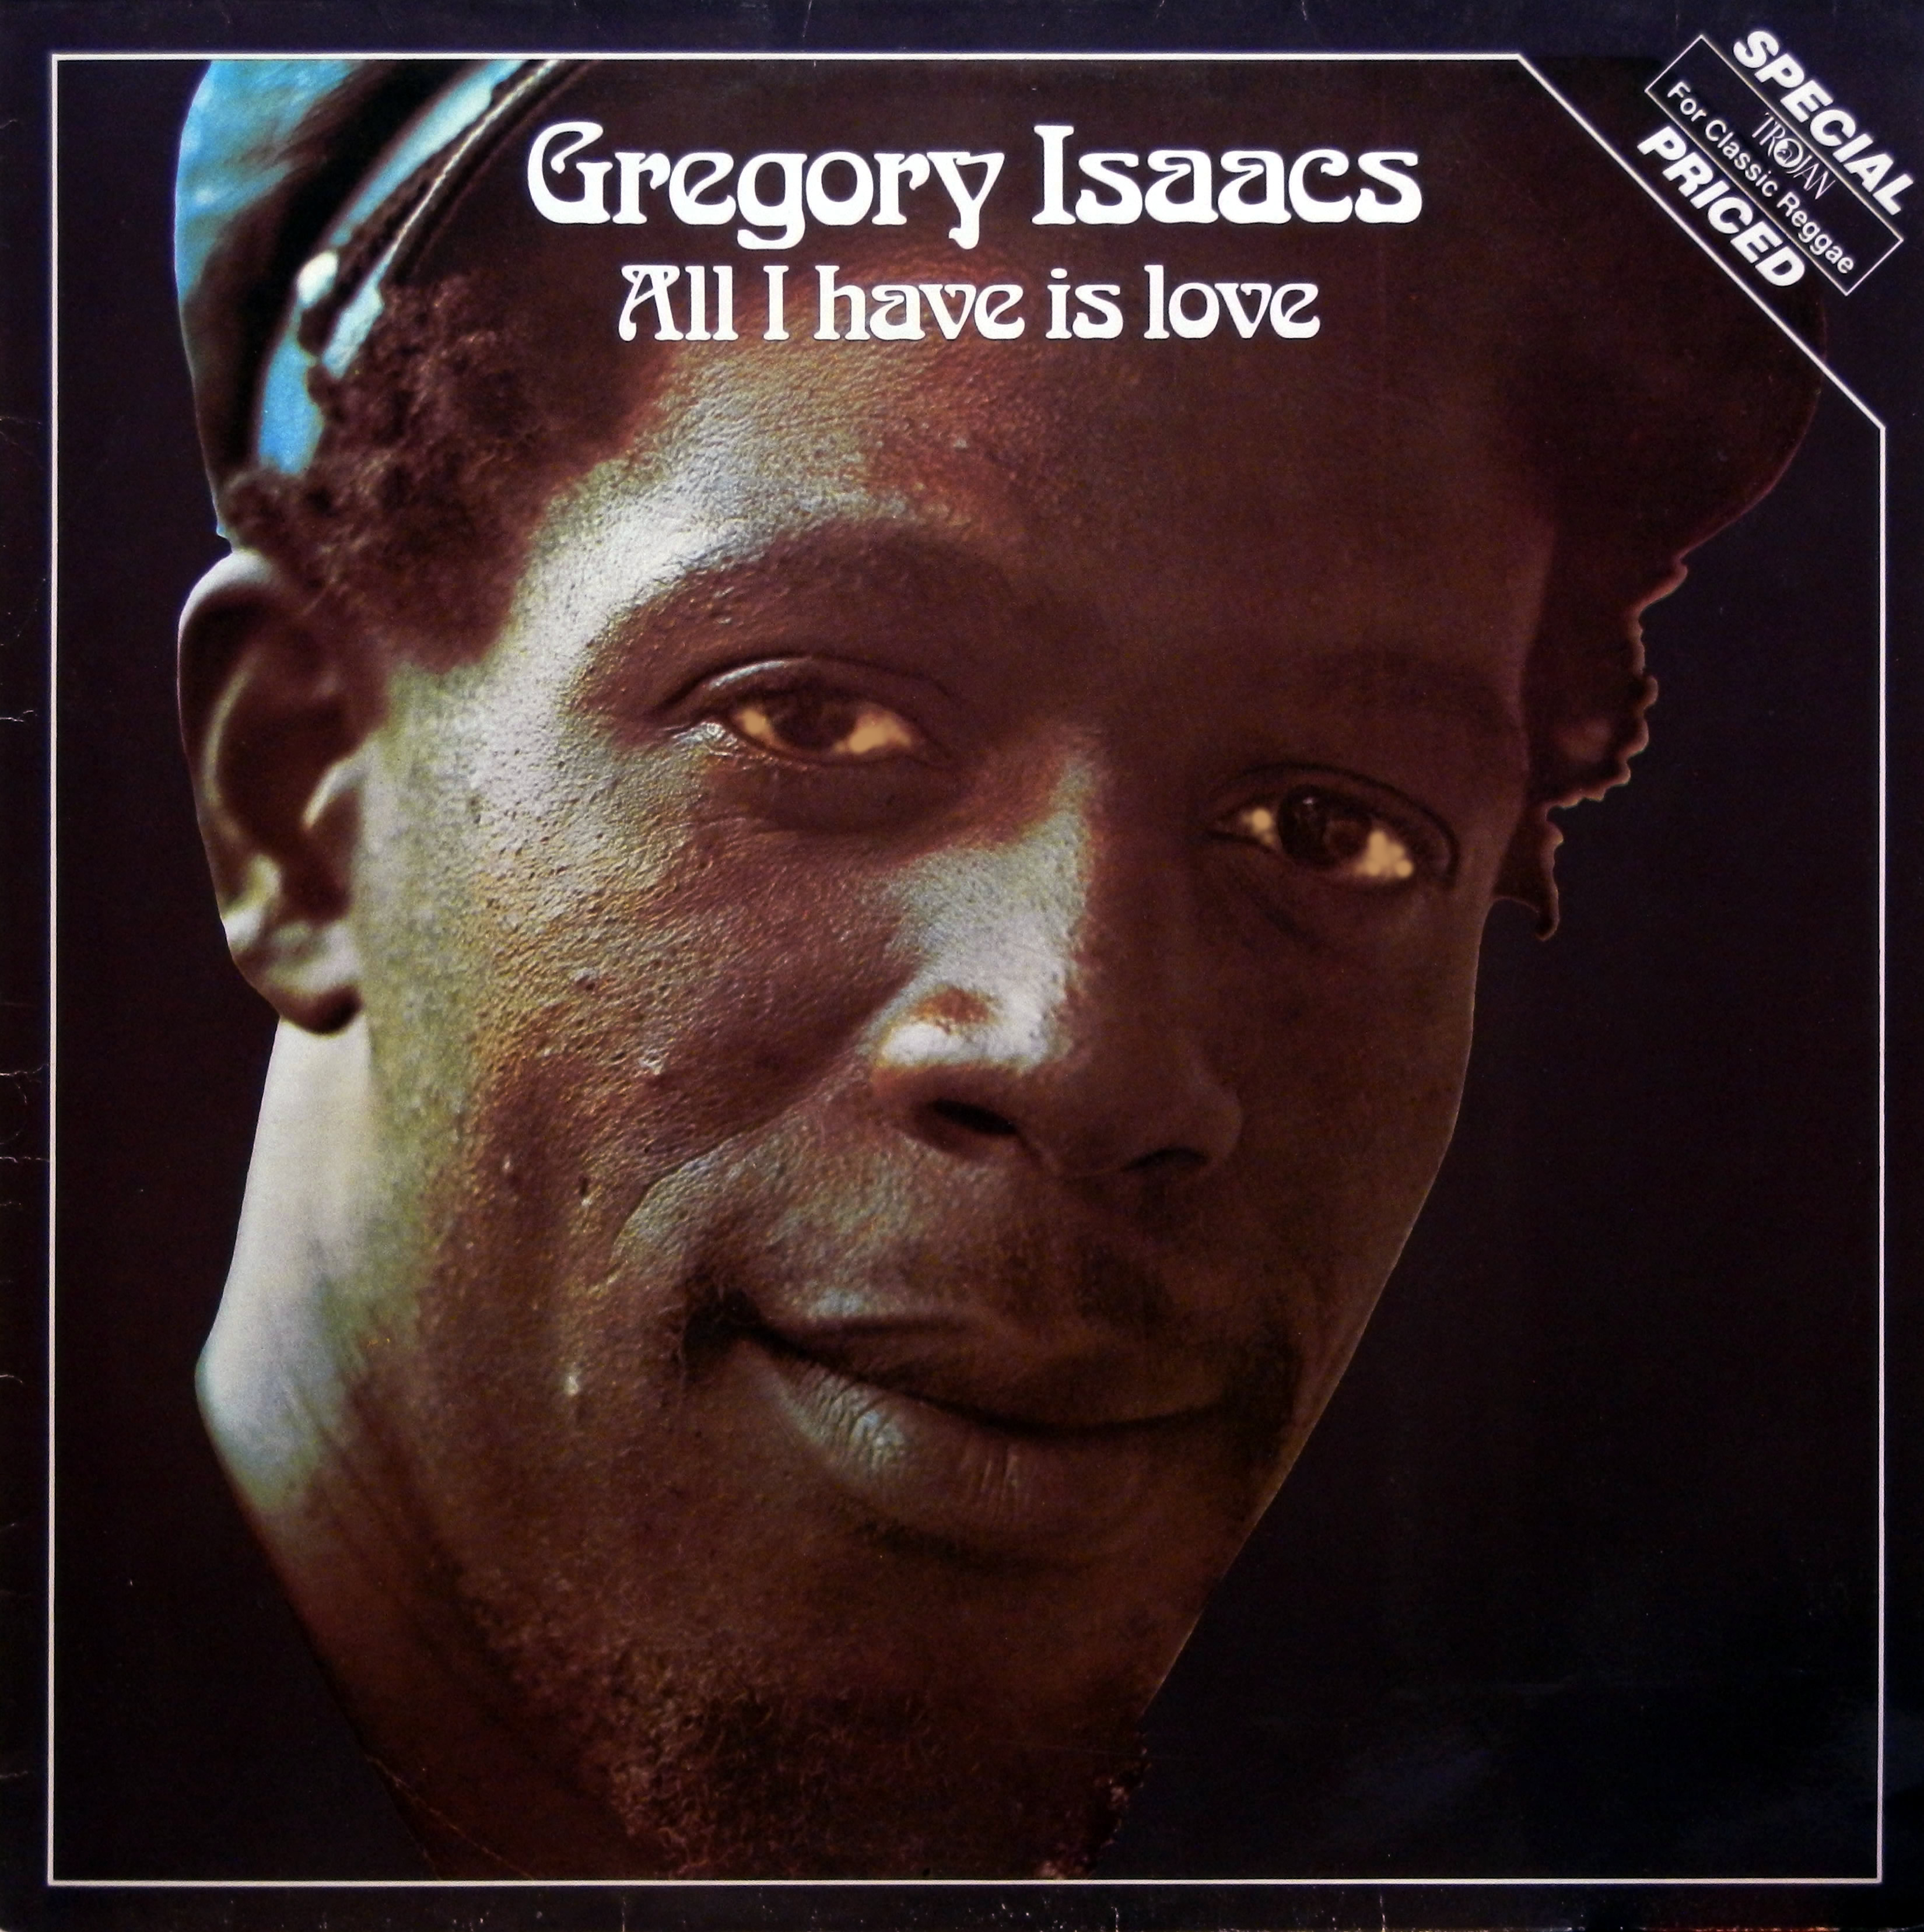 Gregory Isaacs - Struggling On